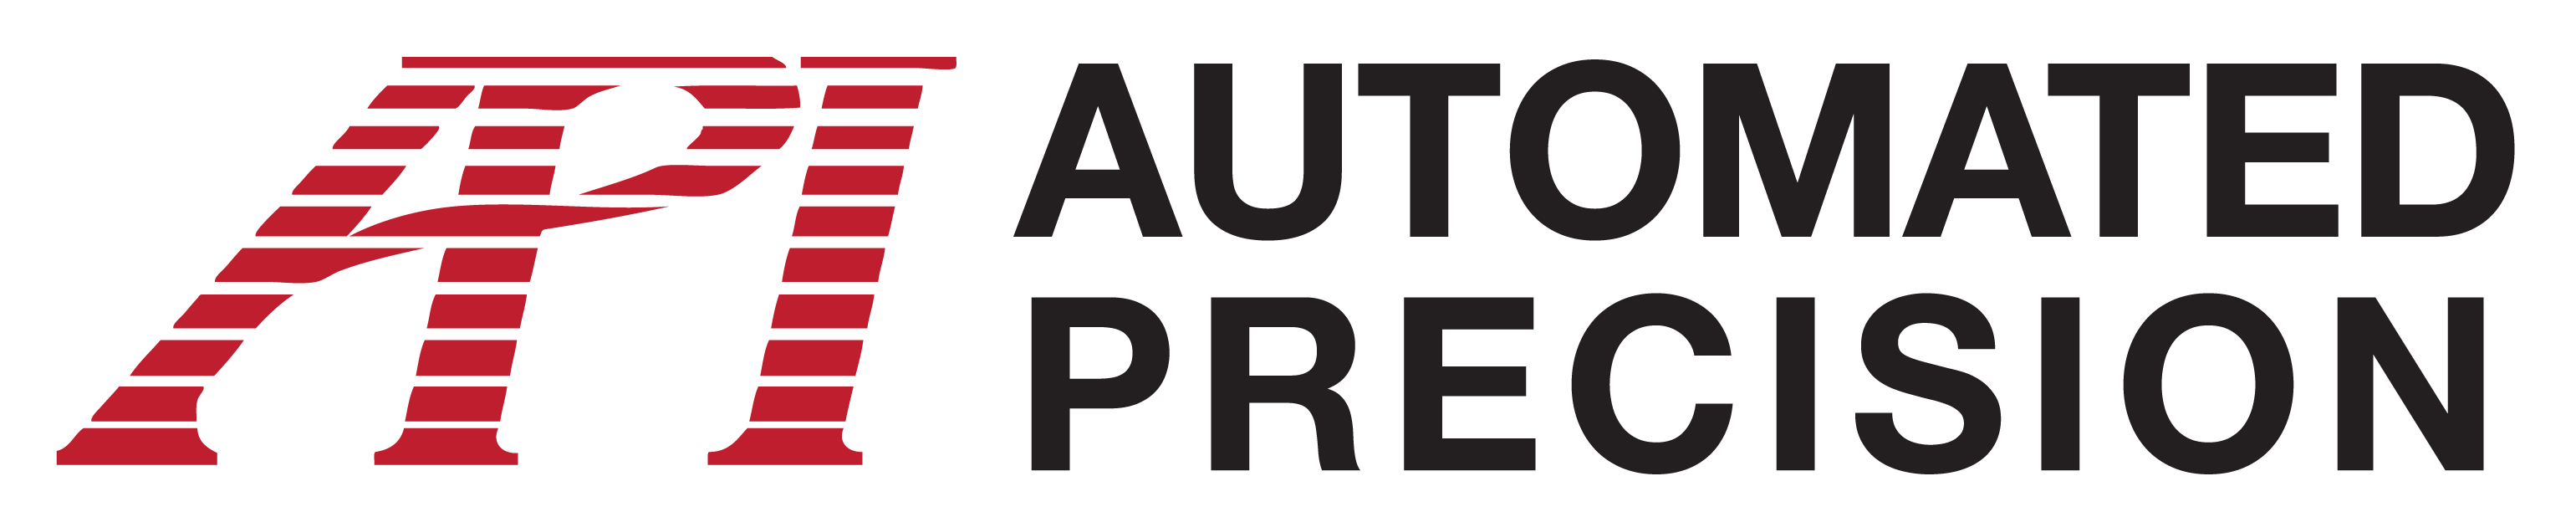 2015-automated-precision-logo-02.png